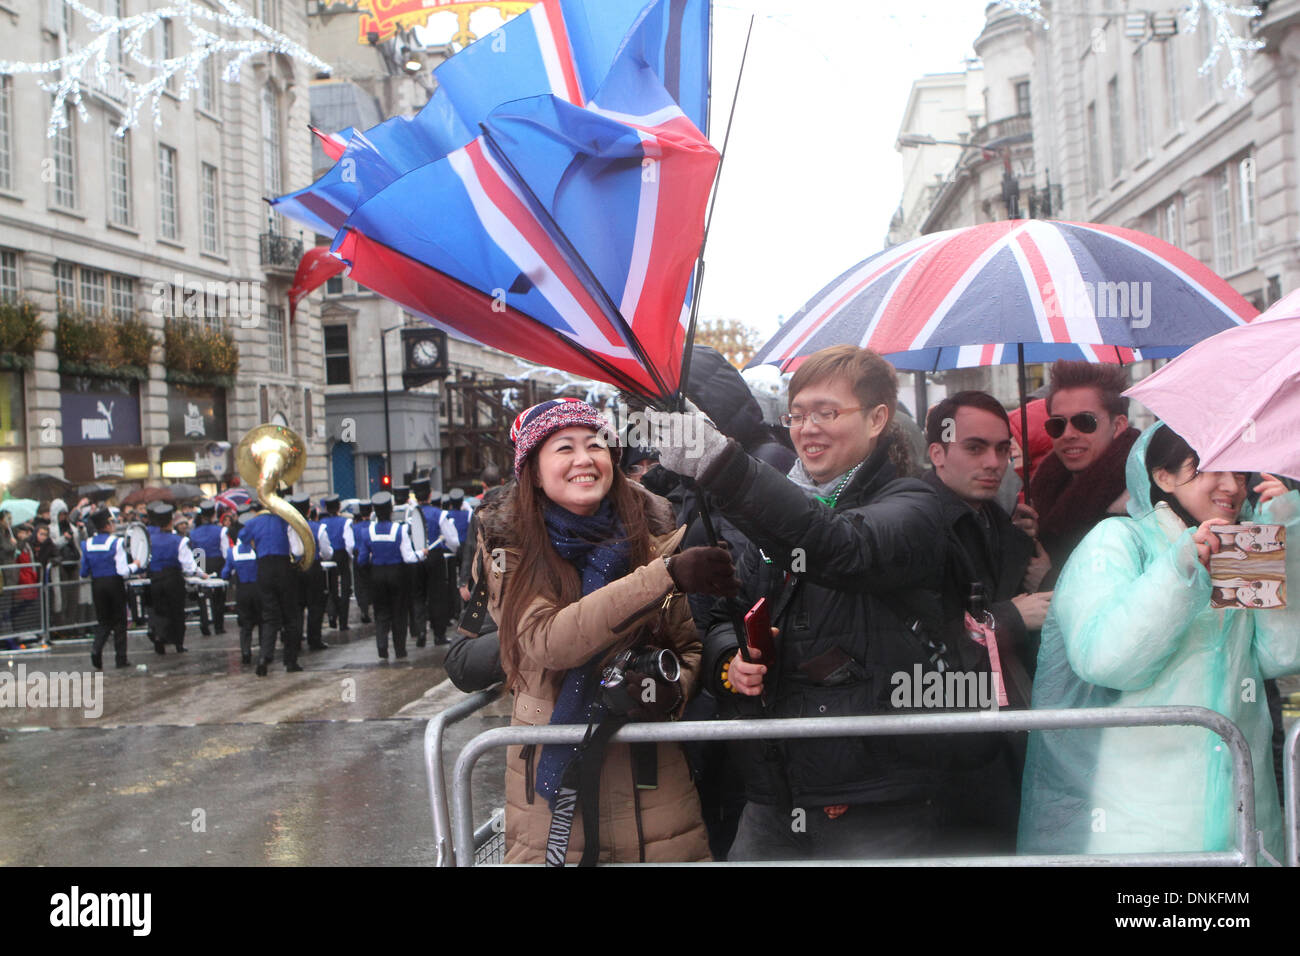 London,UK,1st January 2014,Strong Winds blew umbrellas inside out at the London's New Year's Day Parade 2014 Credit: Stock Photo